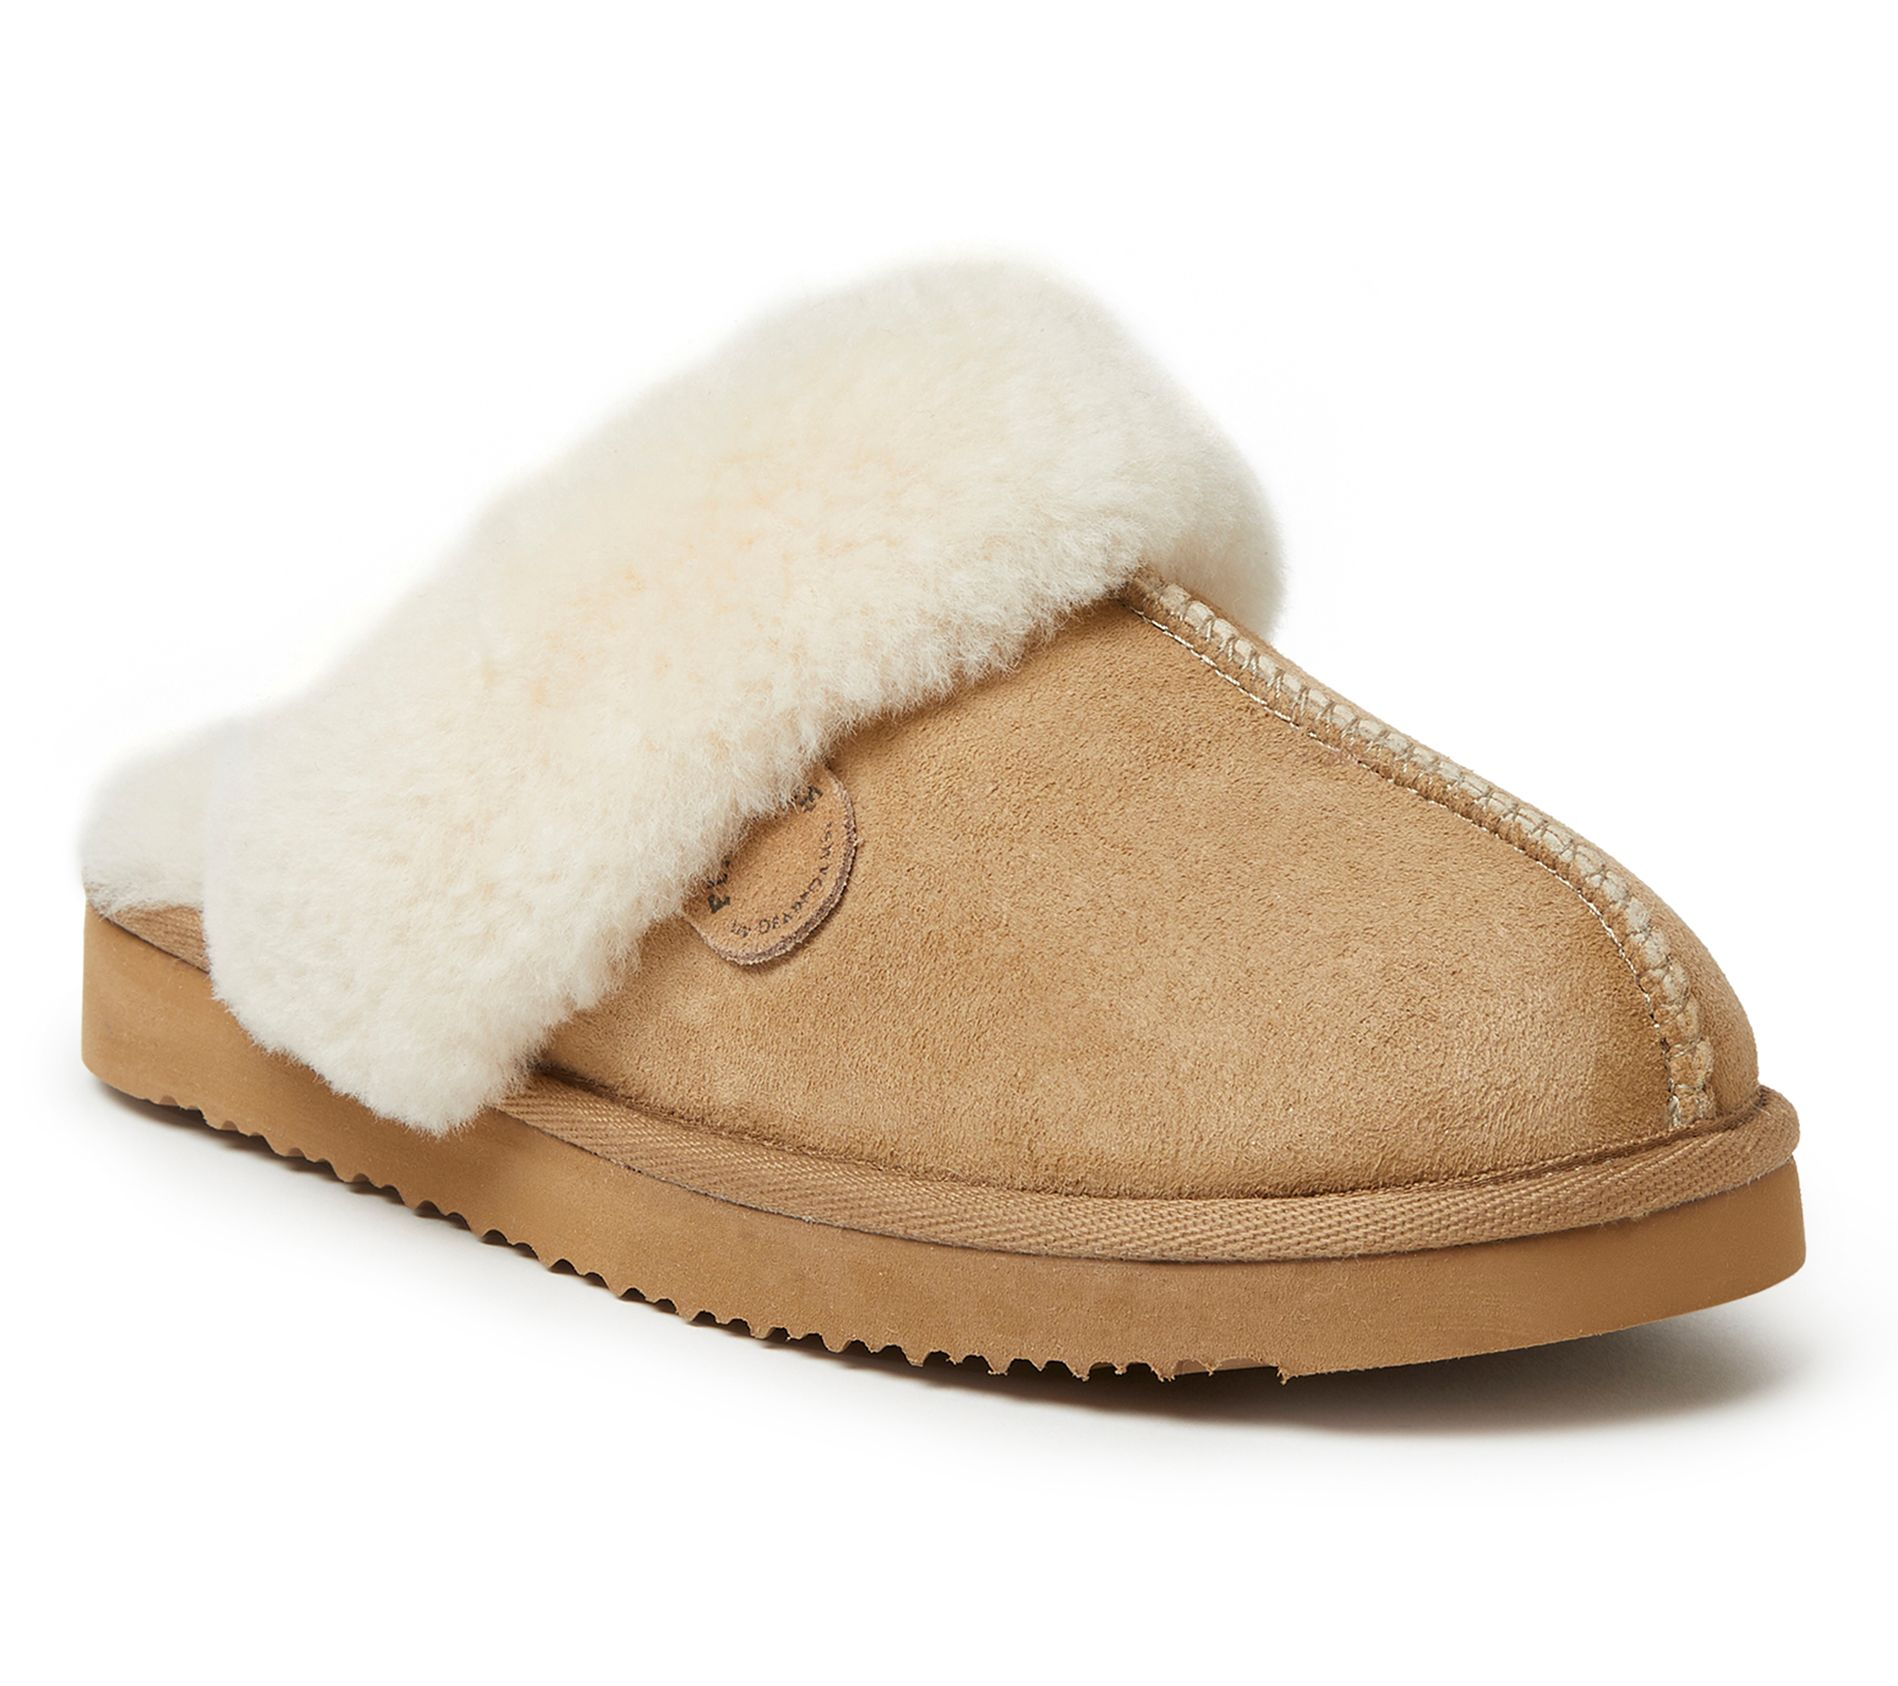 Womens Open Toe Slippers Cheetah Worlds Softest Cozy Collection Large New